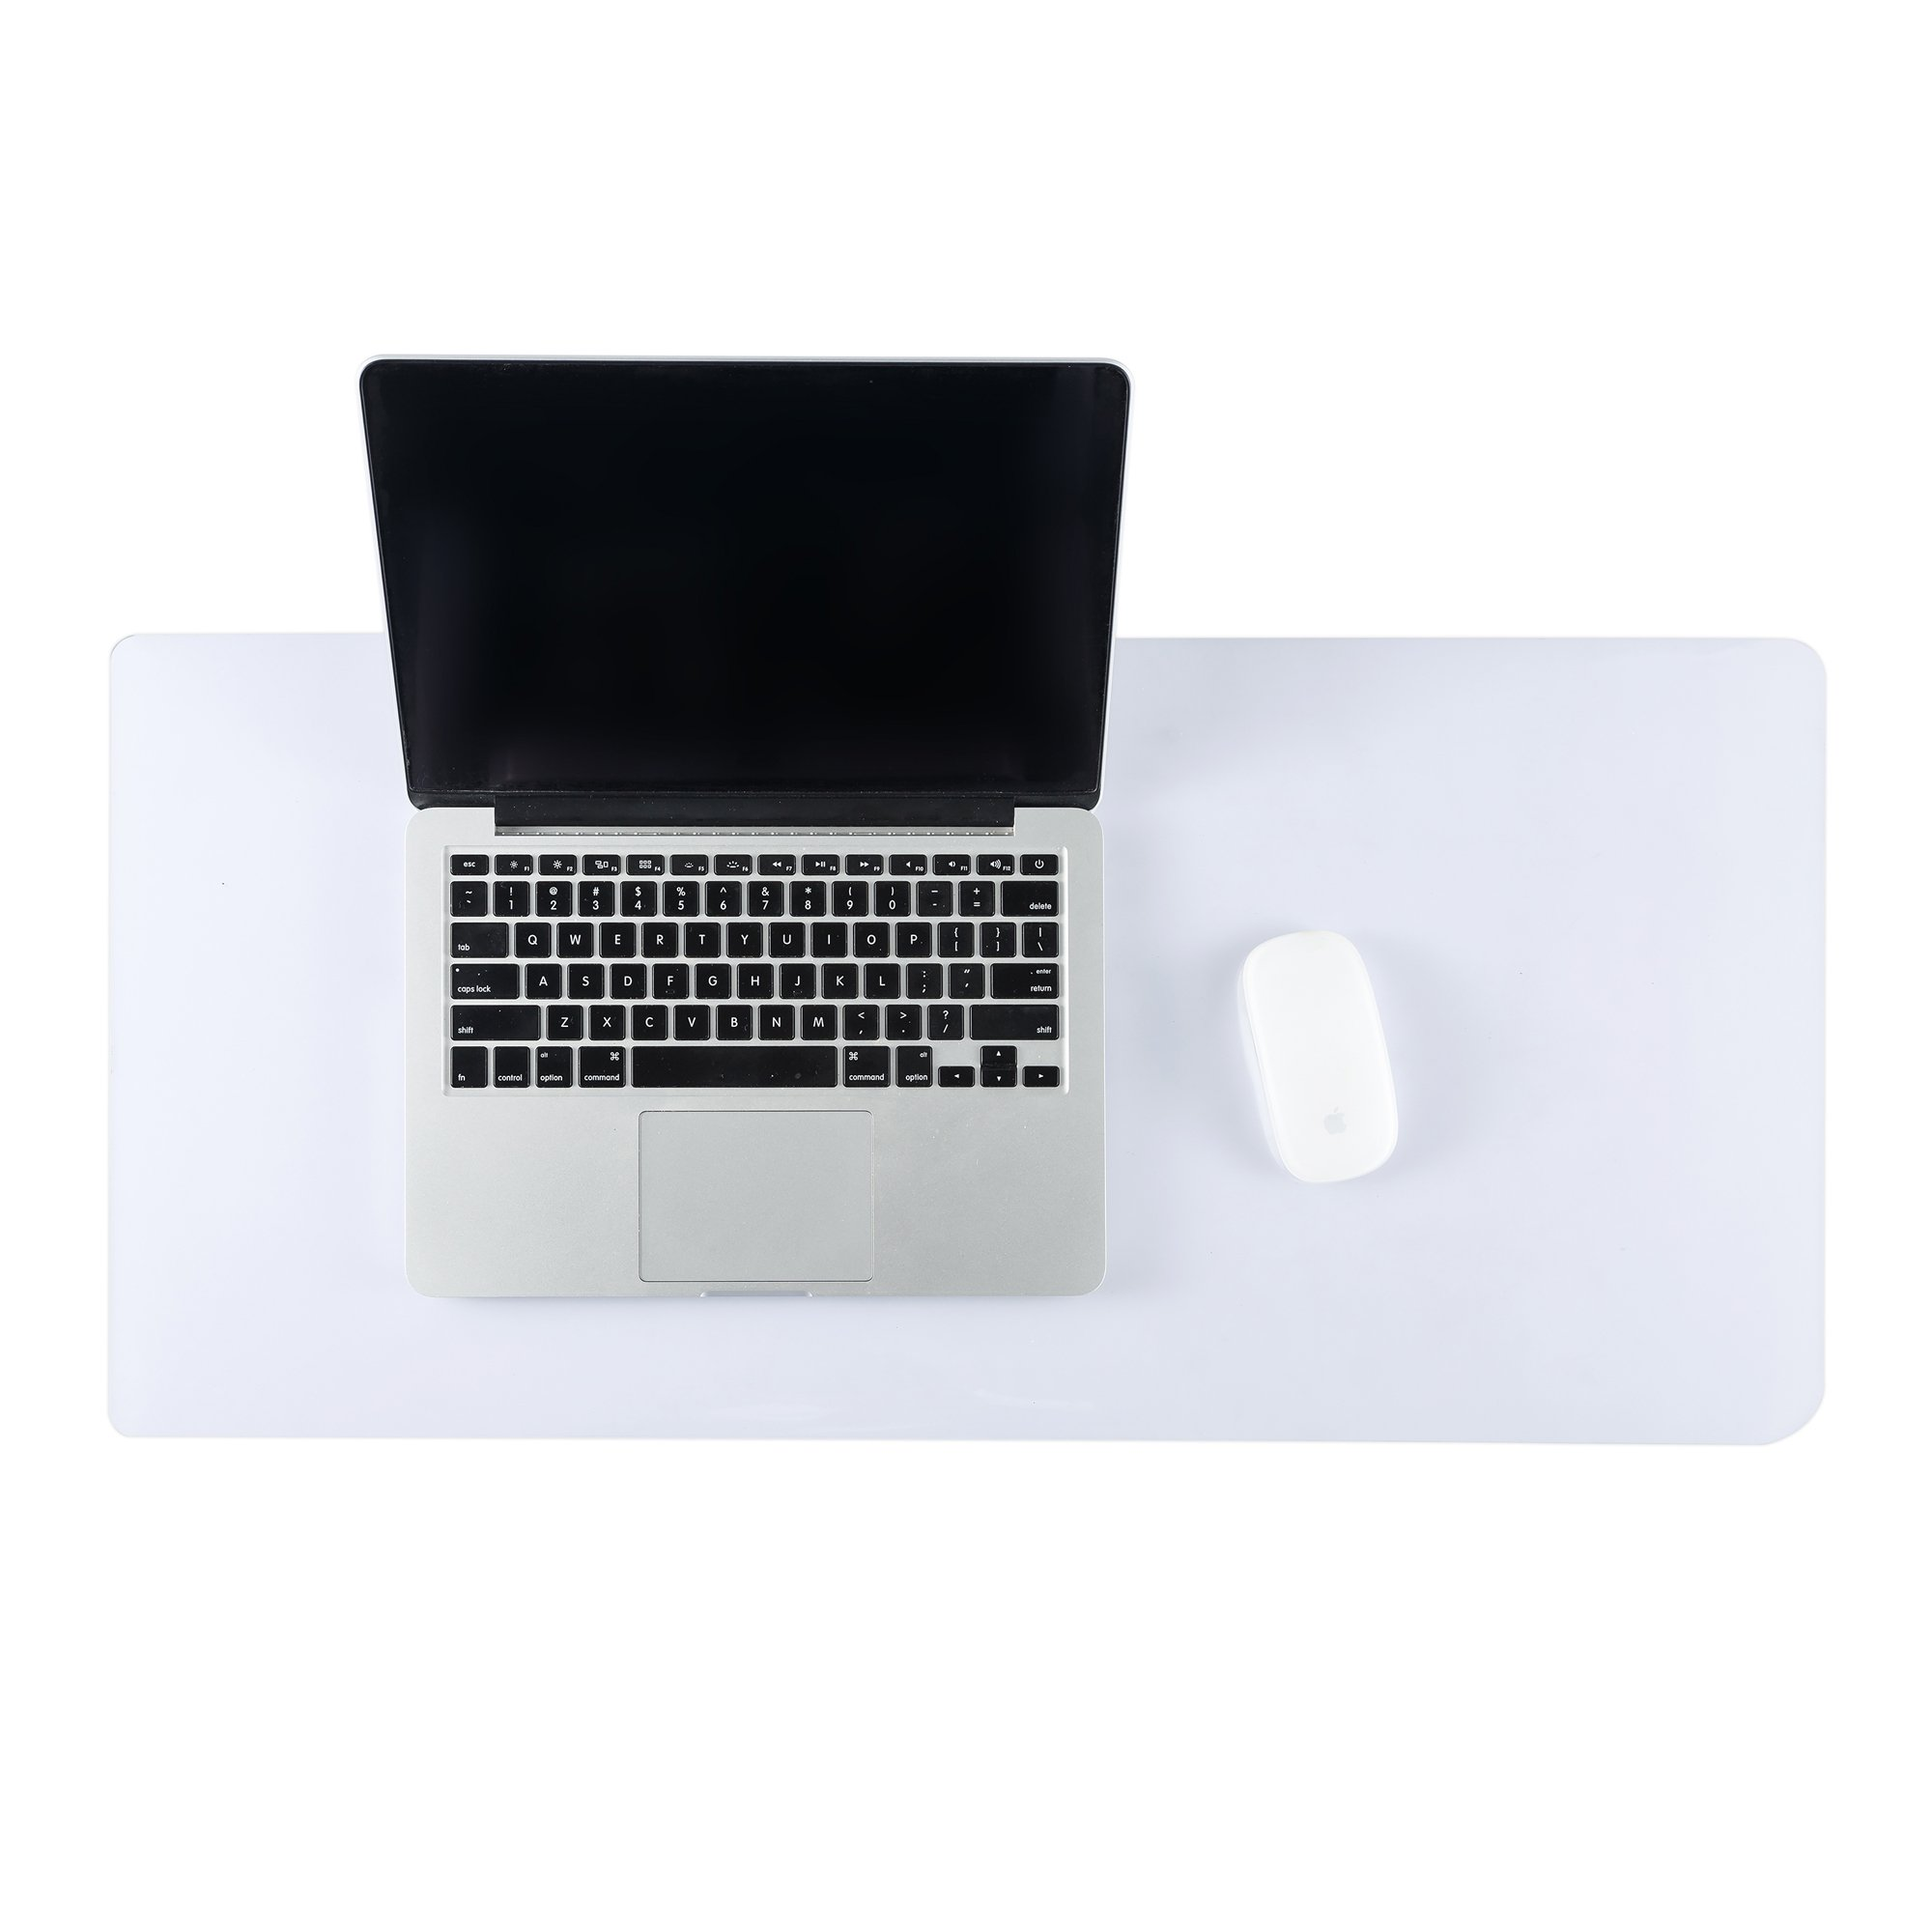 ETECHMART Clear Thick 14 x 30 Inches PVC Office Desk Pad Writing Mat